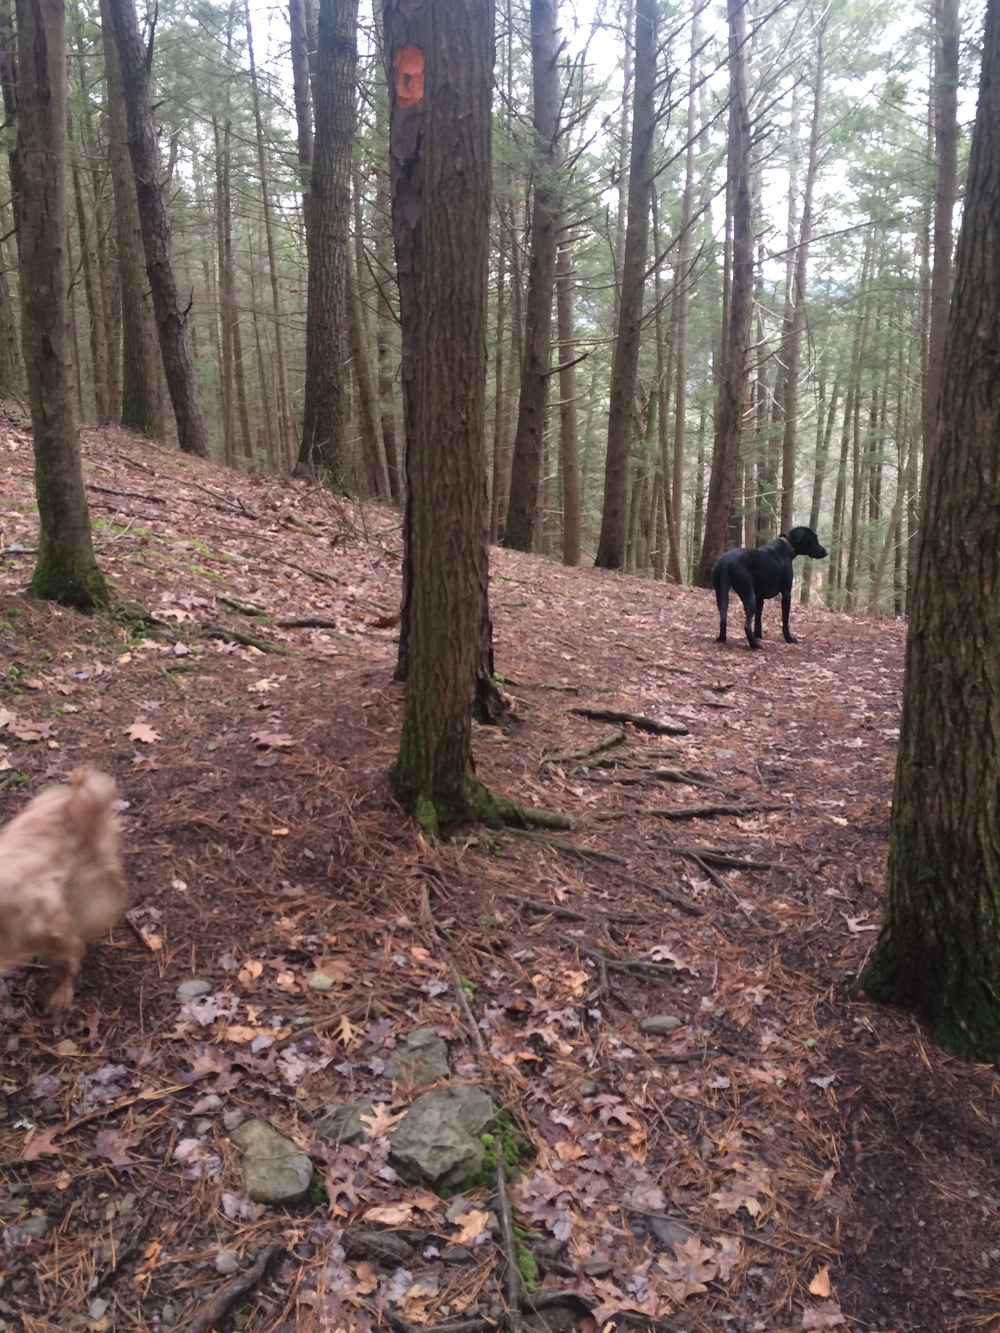 Cruzan (the tall, black dog) and Maggie (the reddish blur in the bottom left corner) enjoying the woods.